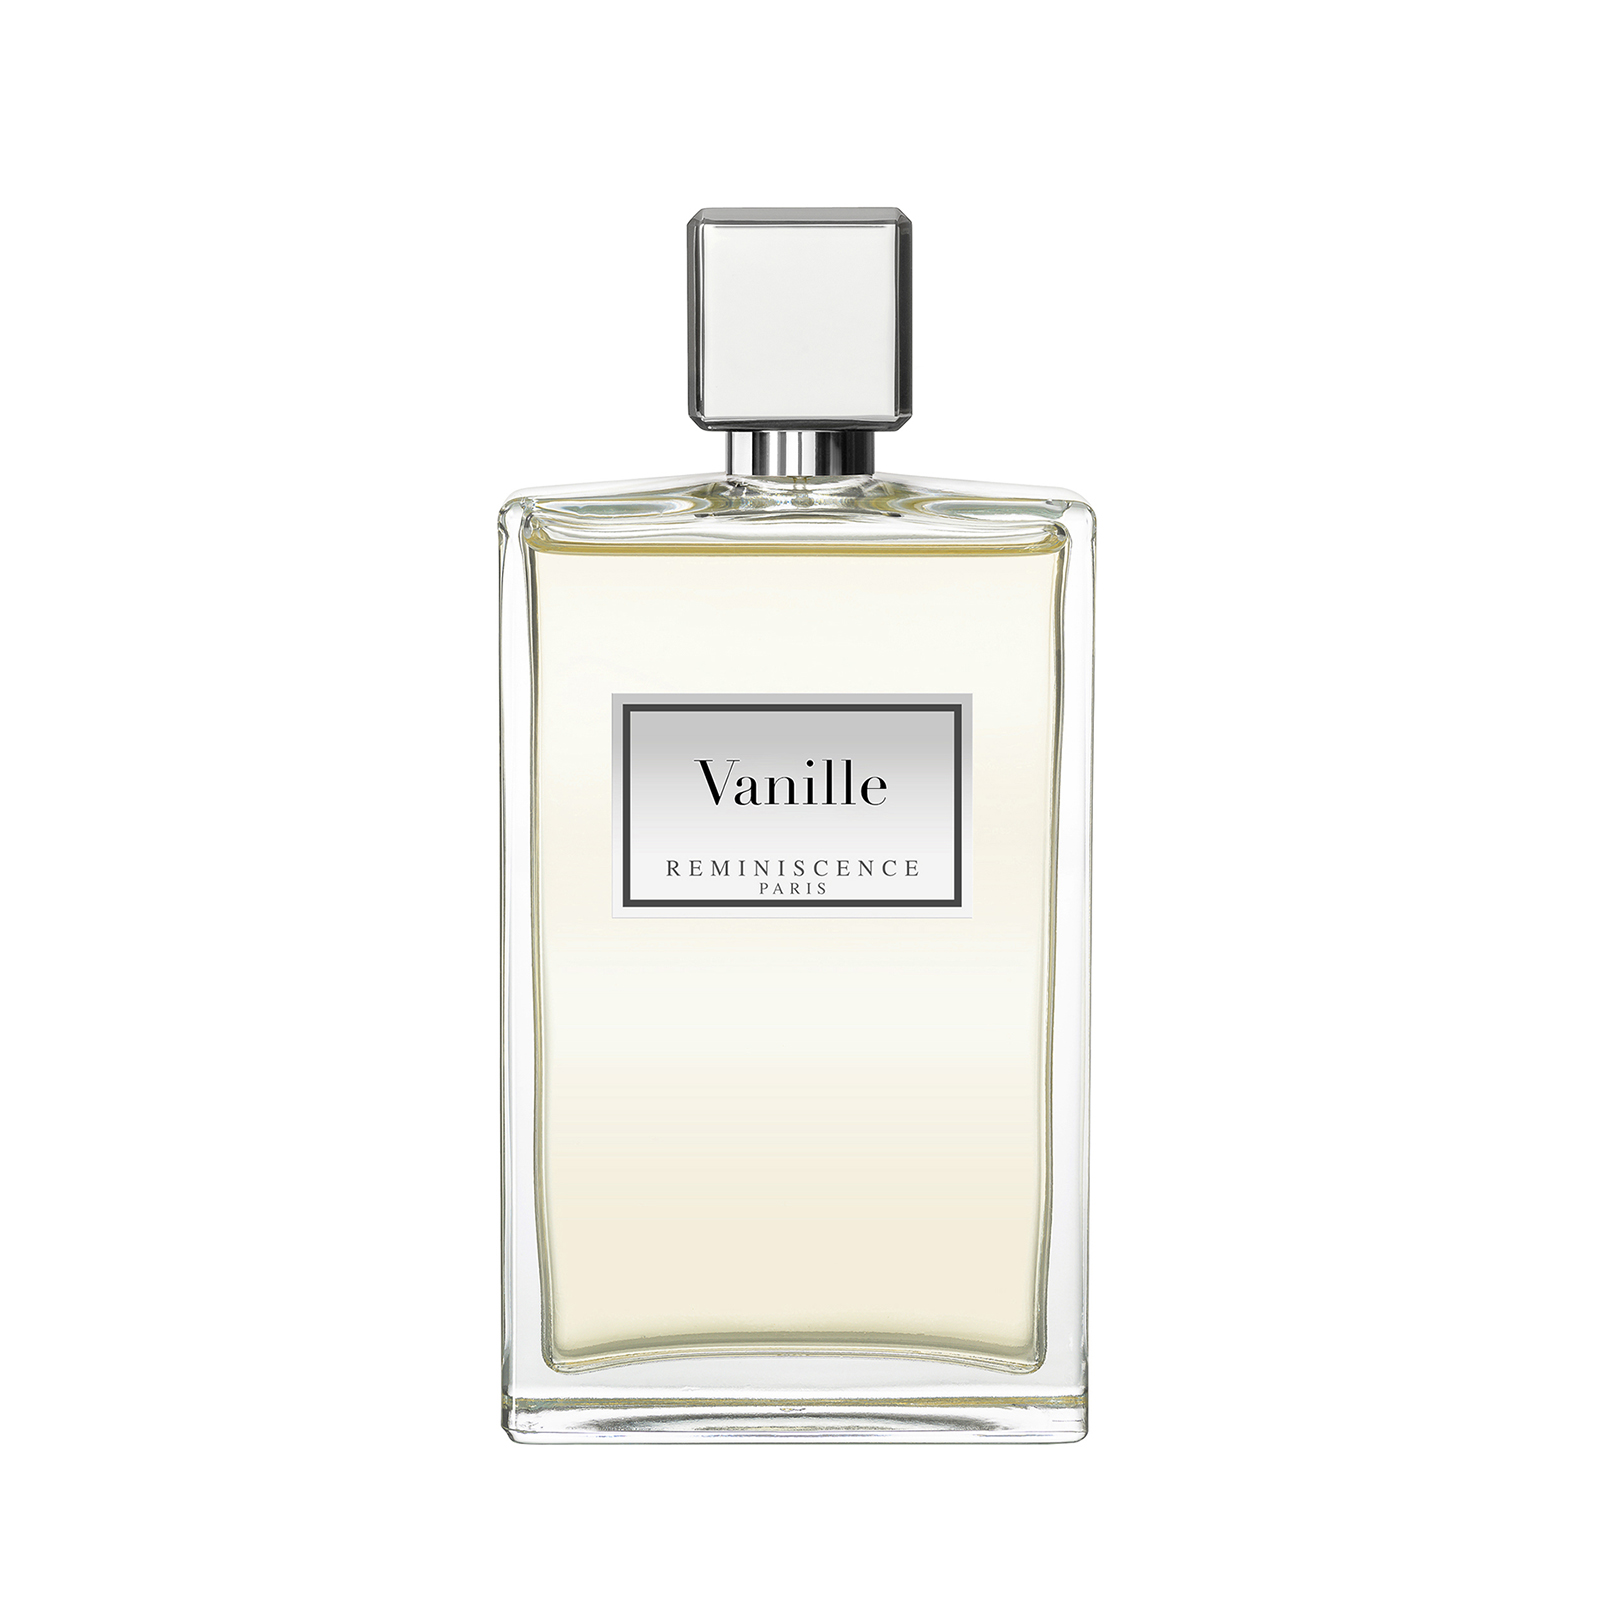 Vanille reminisecnce 100ml 52